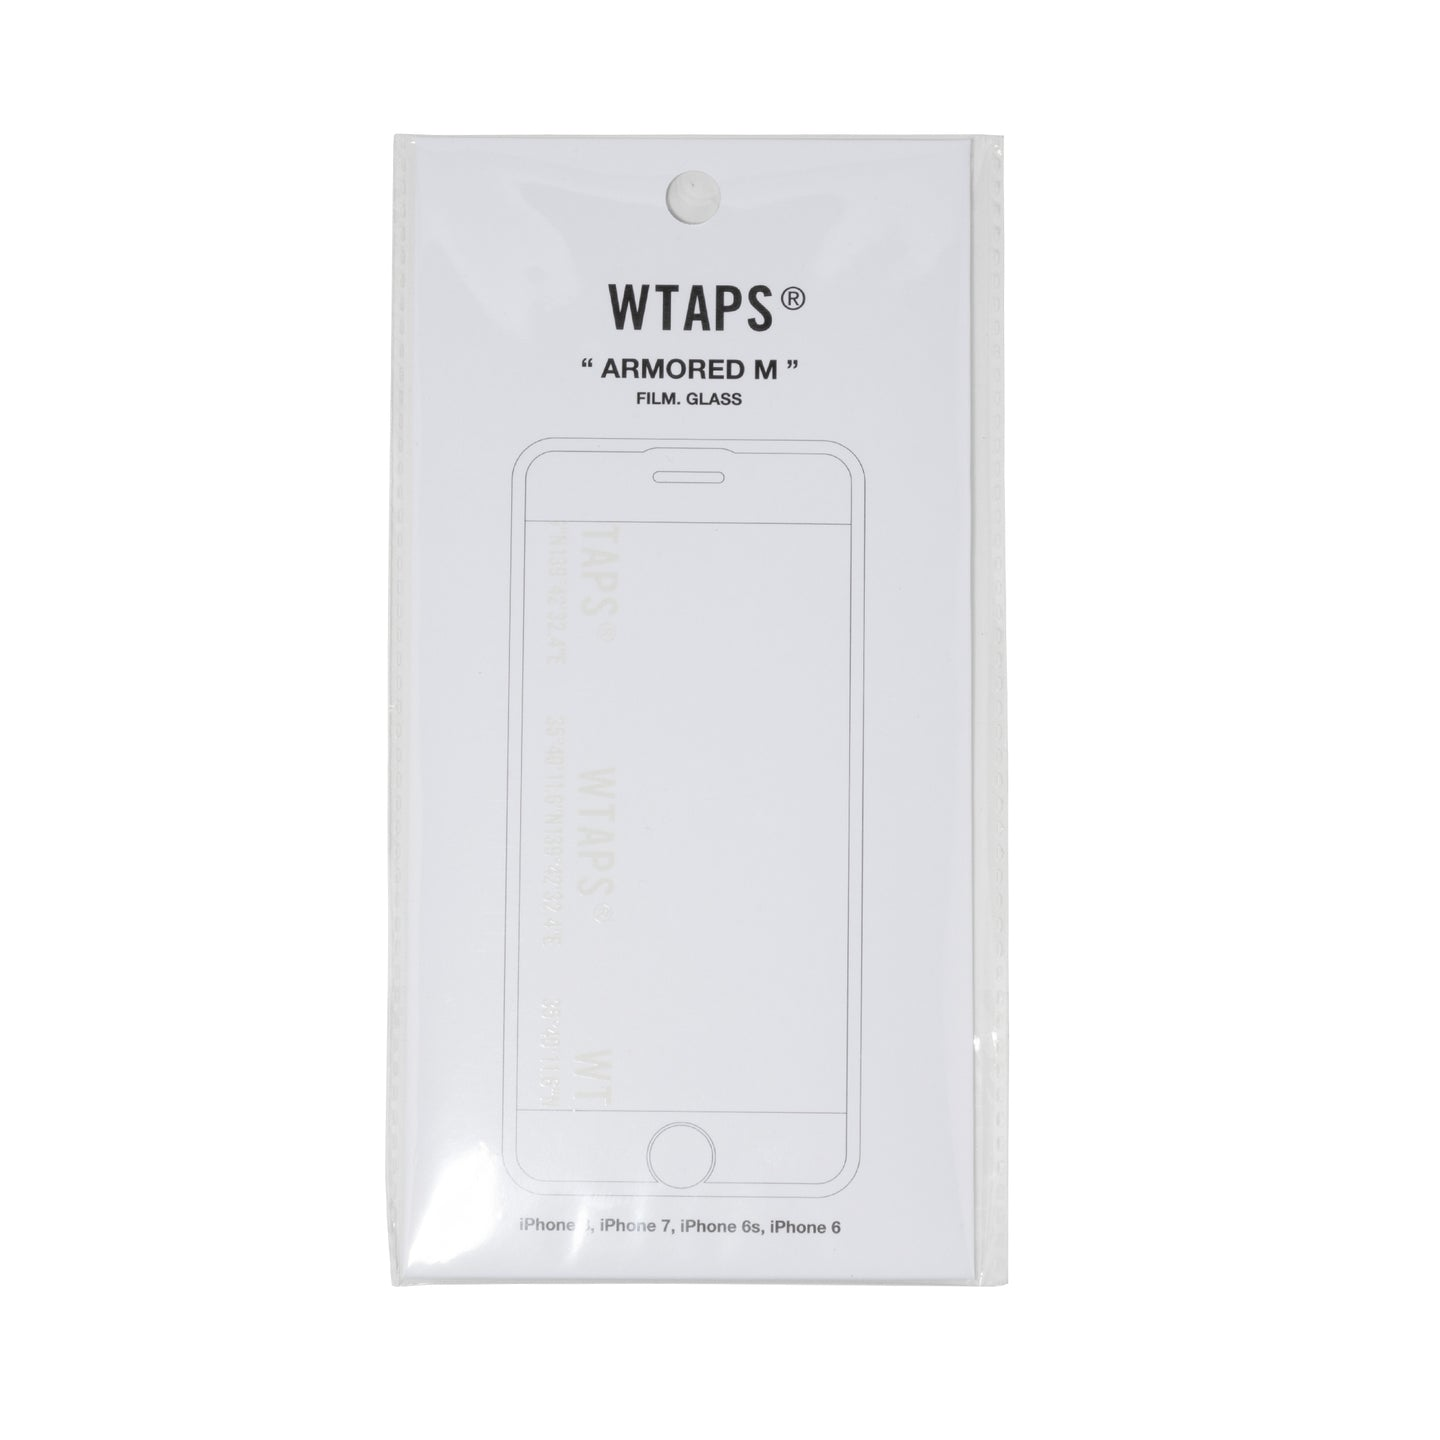 WTAPS Armored M iPhone Glass Film